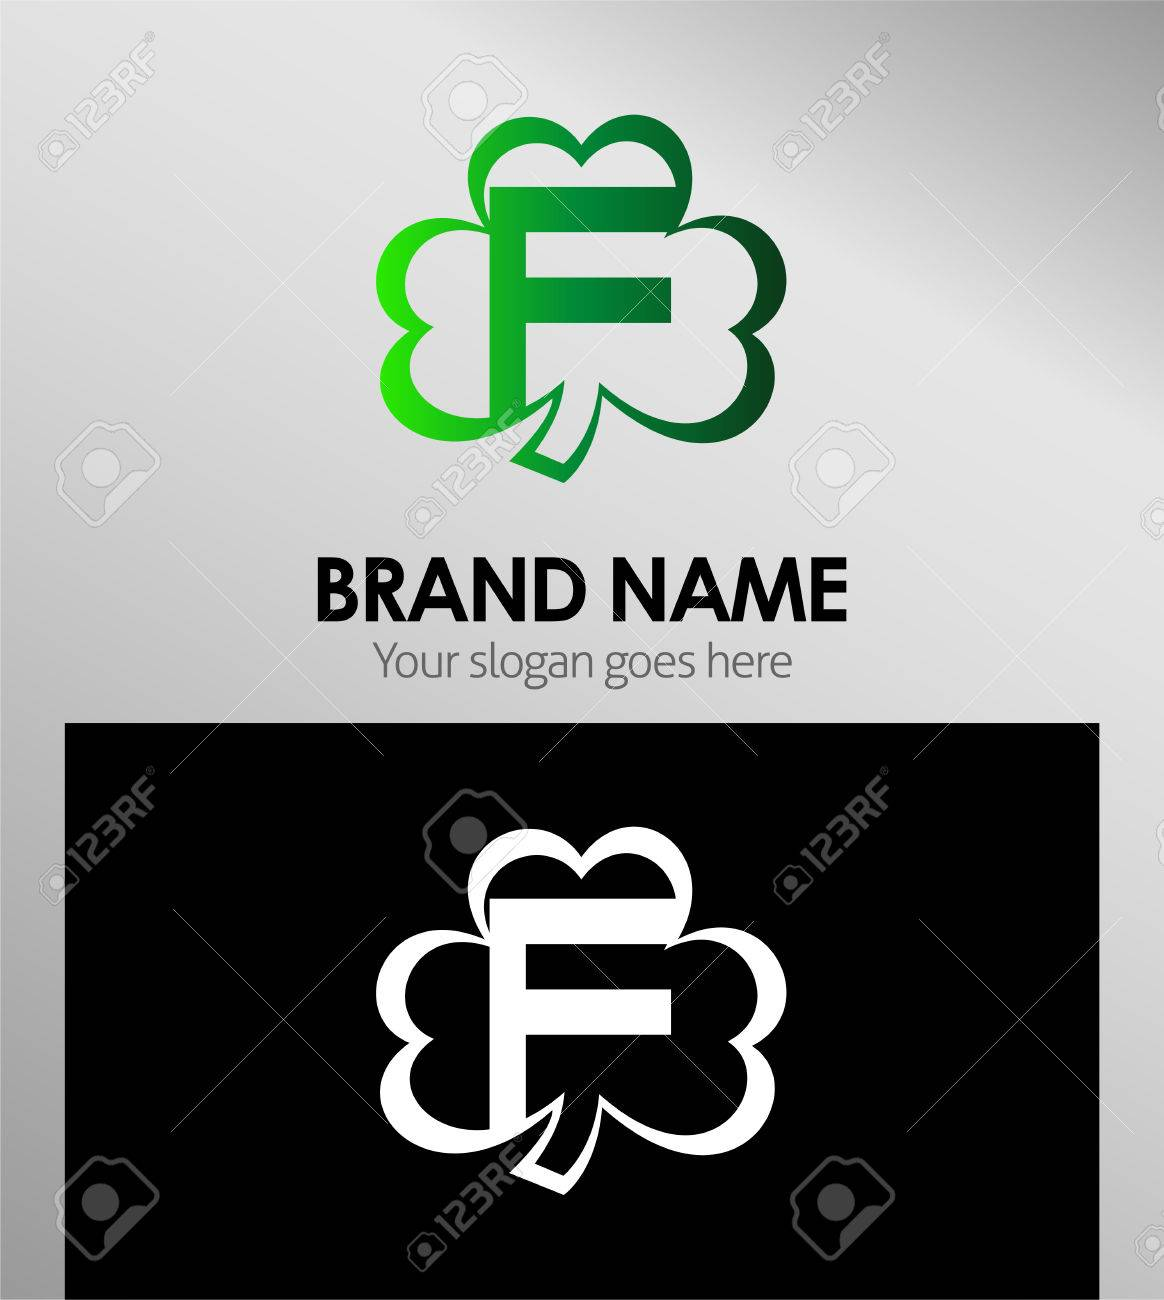 letter f logo design template elements clover icon stock vector 50720611